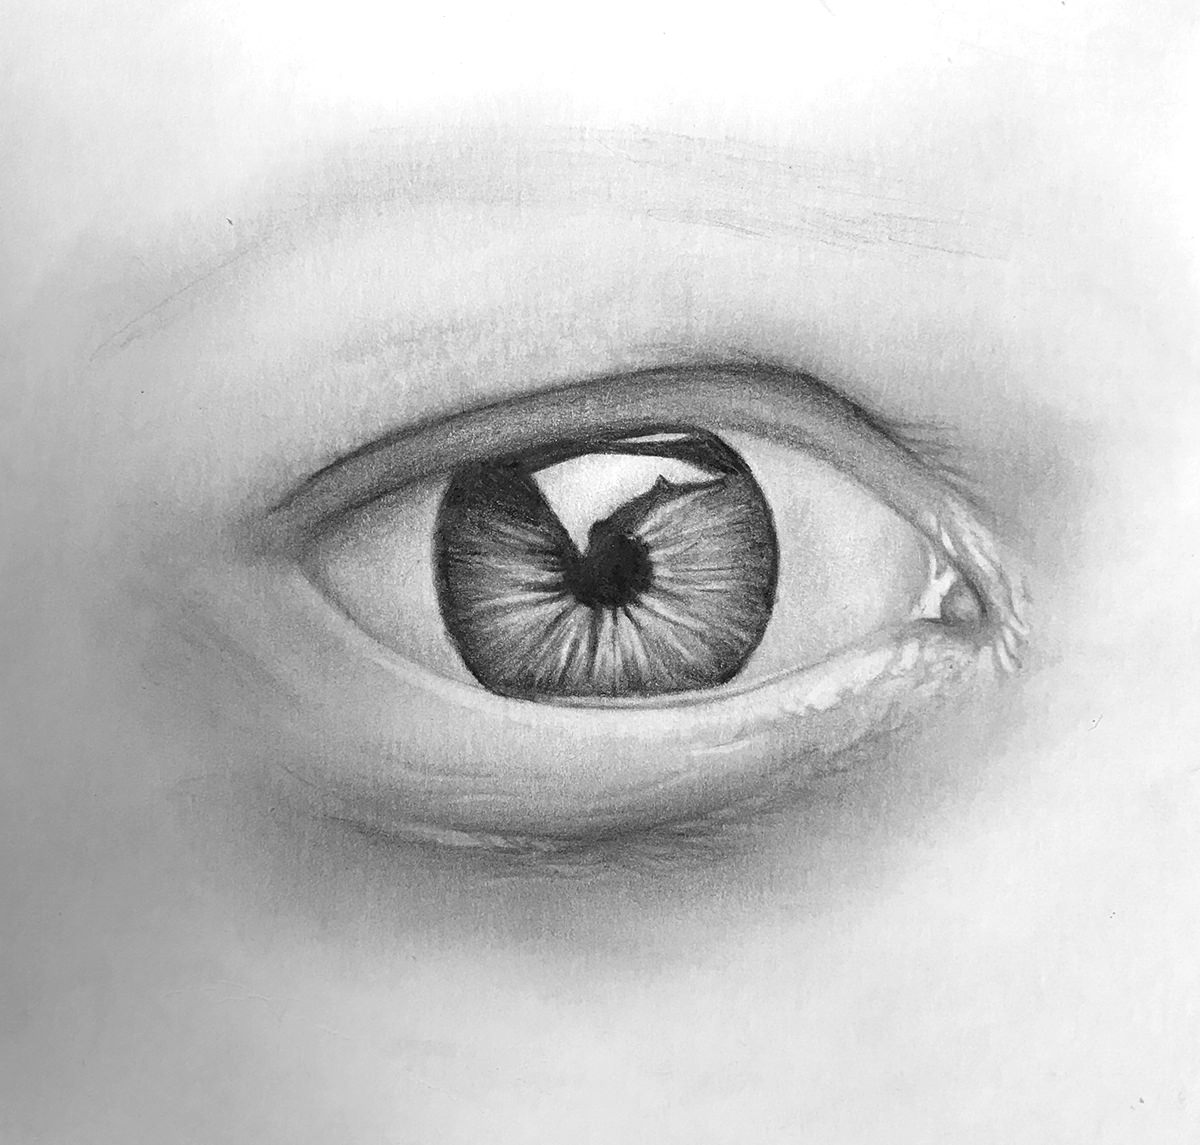 draw-a-realistic-eye-step-08-more-texture-more-shading.jpg